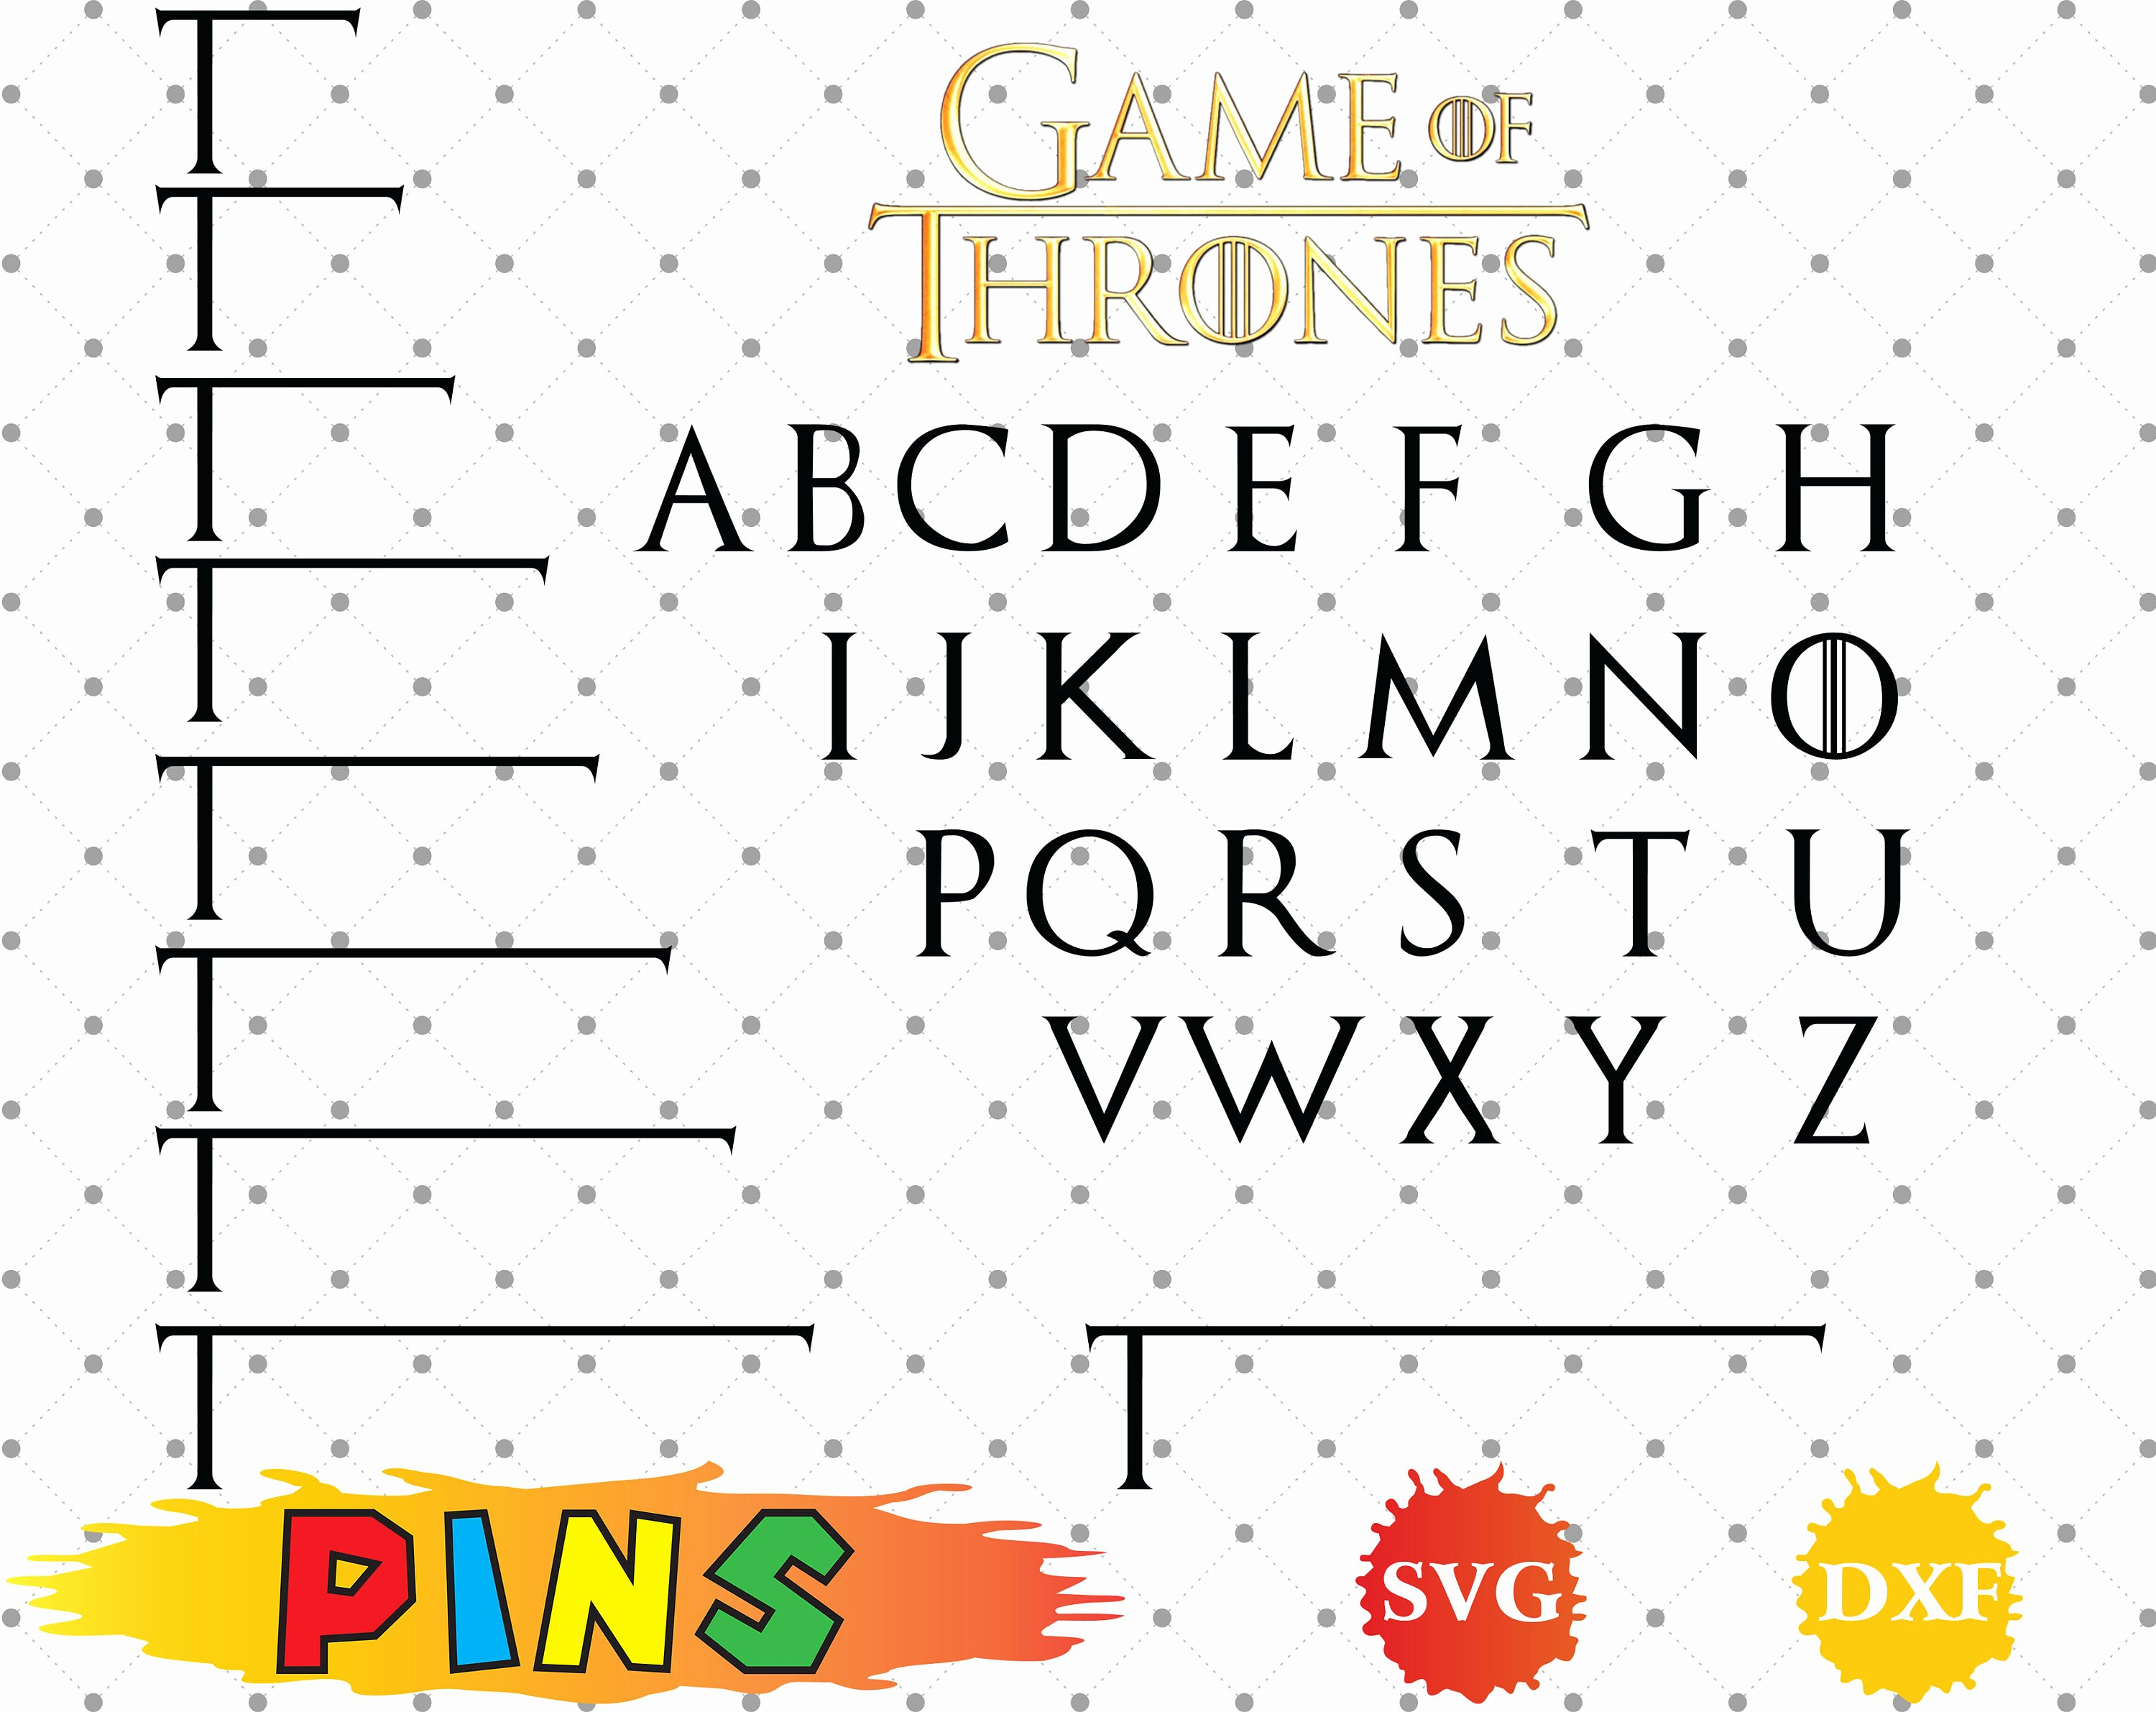 Game Of Thrones Font Lovely Game Thrones Font Svg Dxf Game Thrones Alphabet Game Thrones Letters for Design Print